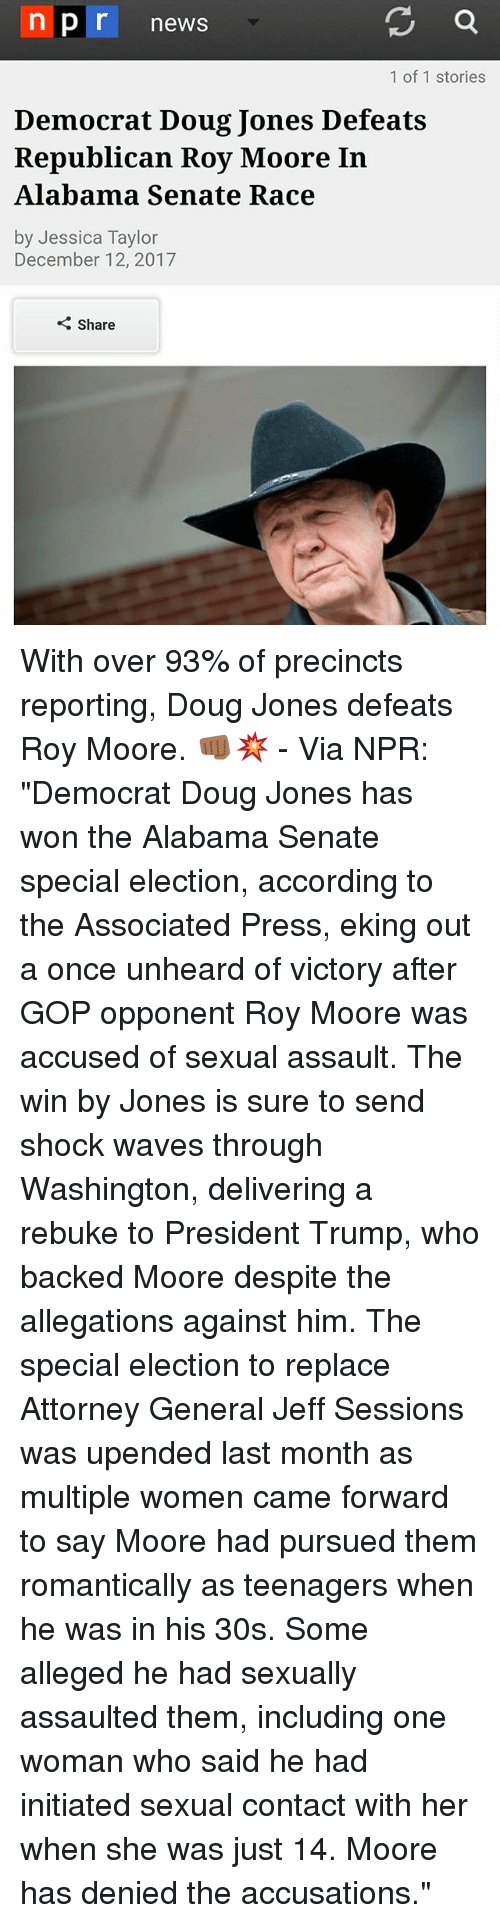 "Doug, Memes, and News: n pr news  1 of 1 stories  Democrat Doug Jones Defeats  Republican Roy Moore In  Alabama Senate Race  by Jessica Taylor  December 12, 2017  Share With over 93% of precincts reporting, Doug Jones defeats Roy Moore. 👊🏾💥 - Via NPR: ""Democrat Doug Jones has won the Alabama Senate special election, according to the Associated Press, eking out a once unheard of victory after GOP opponent Roy Moore was accused of sexual assault. The win by Jones is sure to send shock waves through Washington, delivering a rebuke to President Trump, who backed Moore despite the allegations against him. The special election to replace Attorney General Jeff Sessions was upended last month as multiple women came forward to say Moore had pursued them romantically as teenagers when he was in his 30s. Some alleged he had sexually assaulted them, including one woman who said he had initiated sexual contact with her when she was just 14. Moore has denied the accusations."""